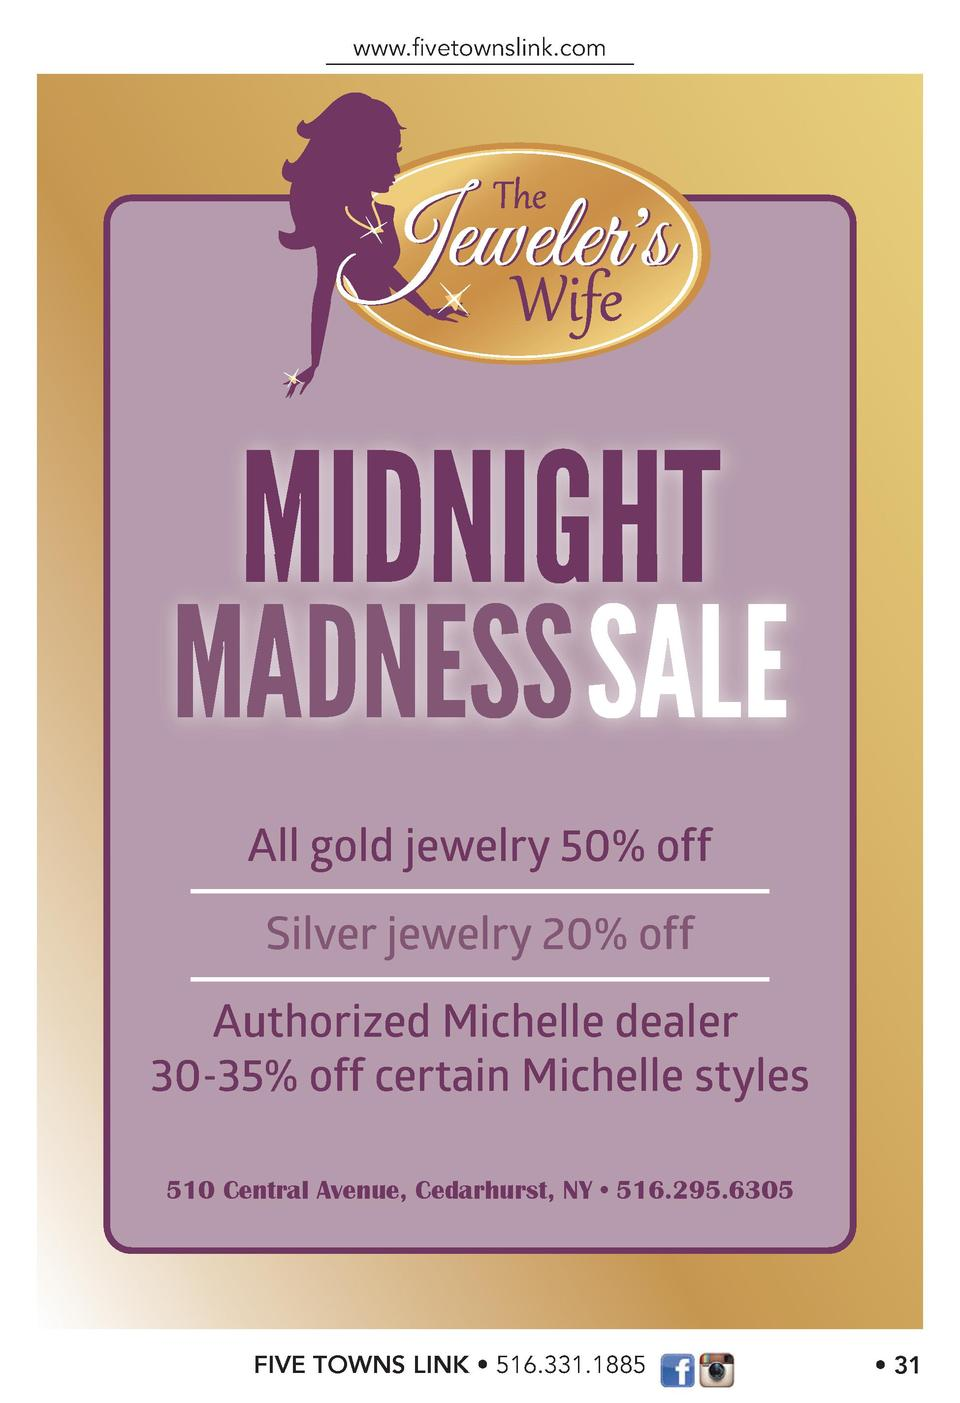 www.   vetownslink.com  MIDNIGHT  MADNESS SALE All gold jewelry 50  off Silver jewelry 20  off Authorized Michelle dealer ...